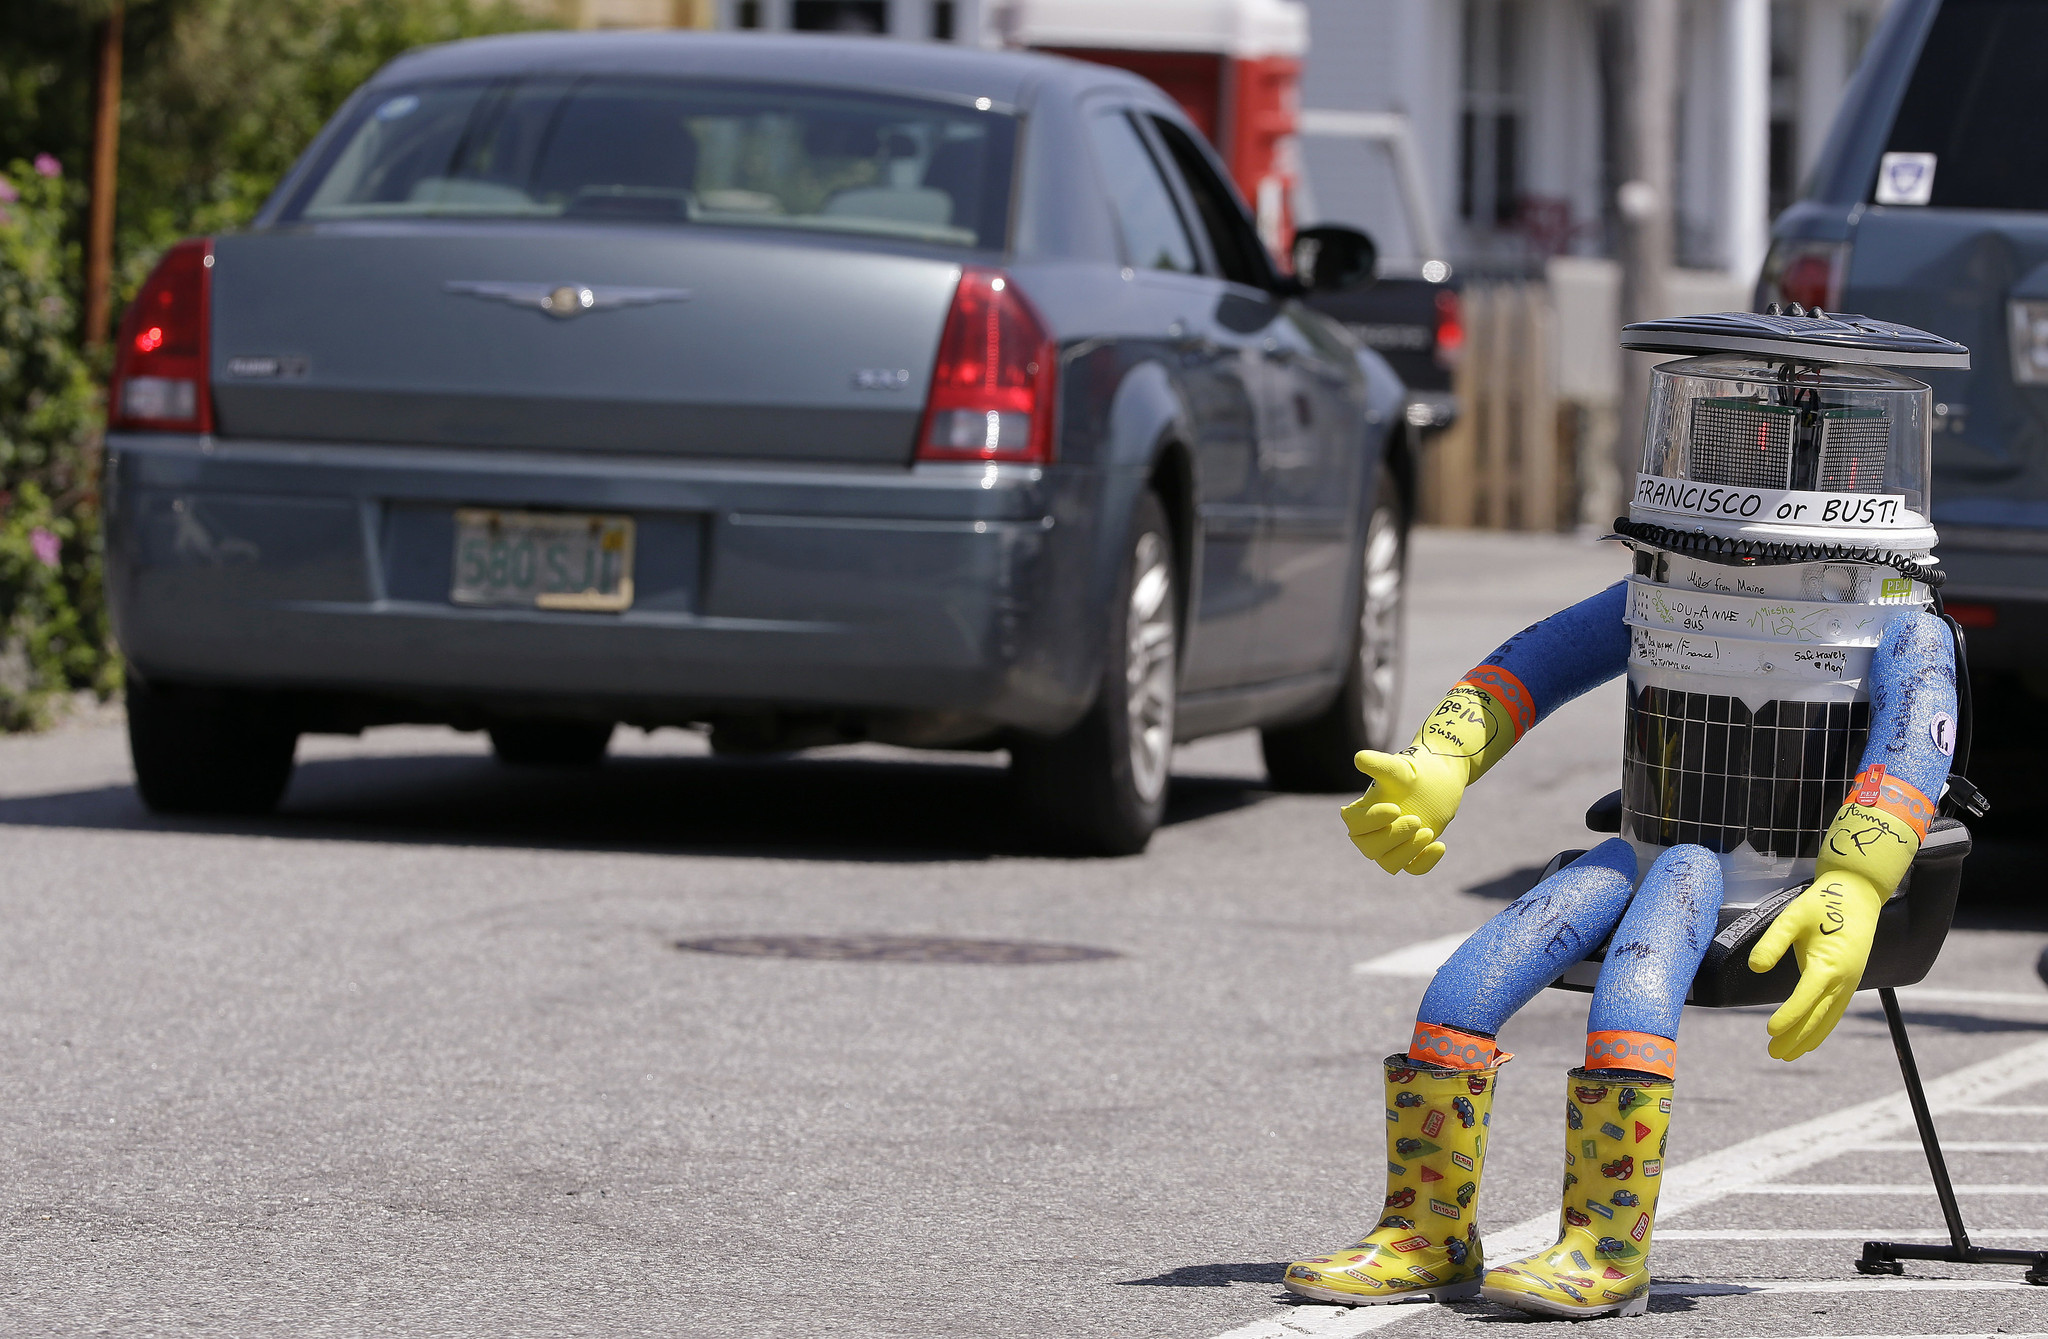 Hitchhiking robot's cross-country trip in U.S. ends in Philly